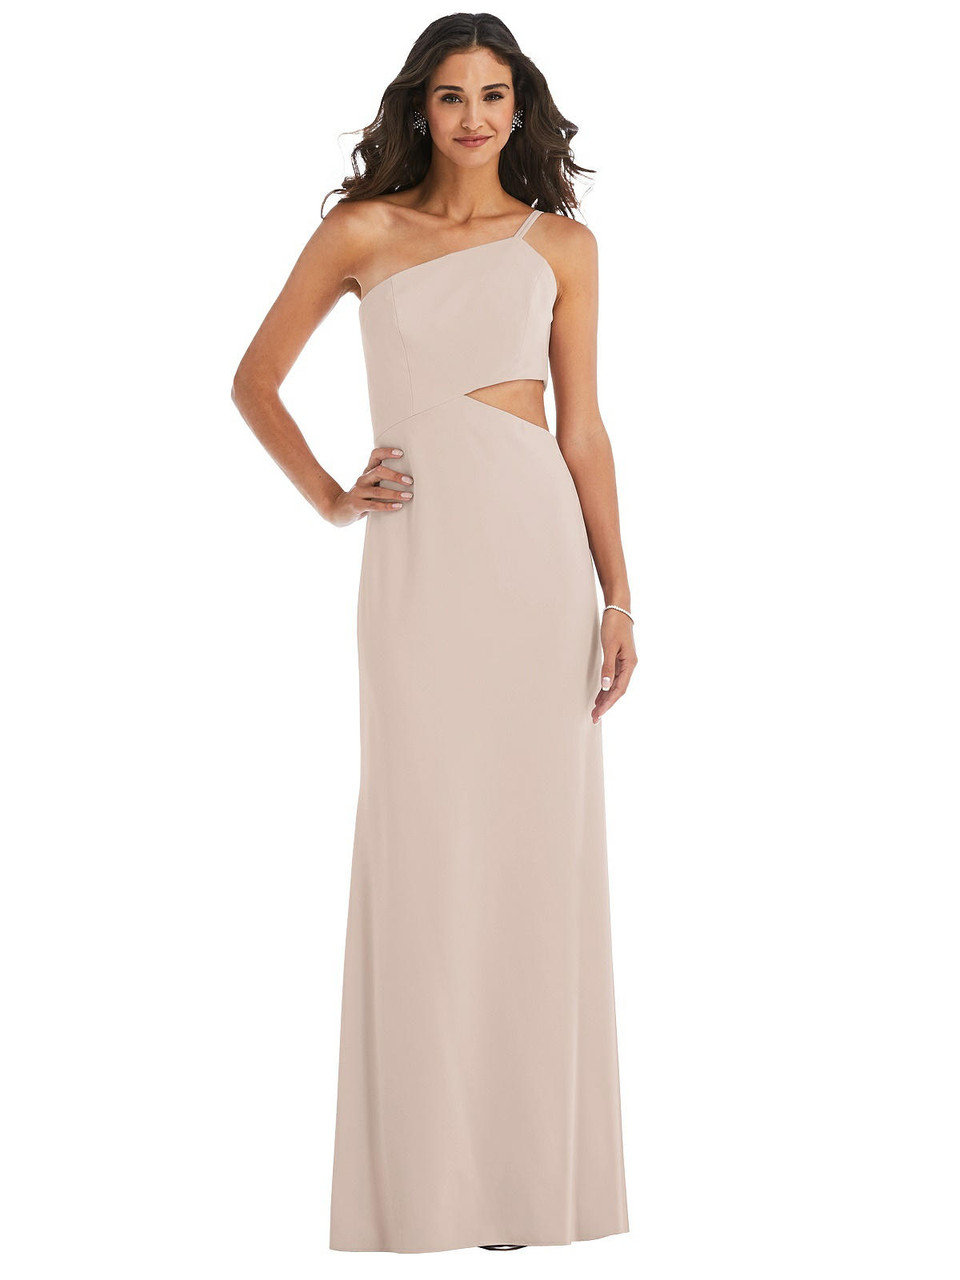 After Six Style 6844  |  Crepe - One-Shoulder Midriff Cutout Maxi Dress